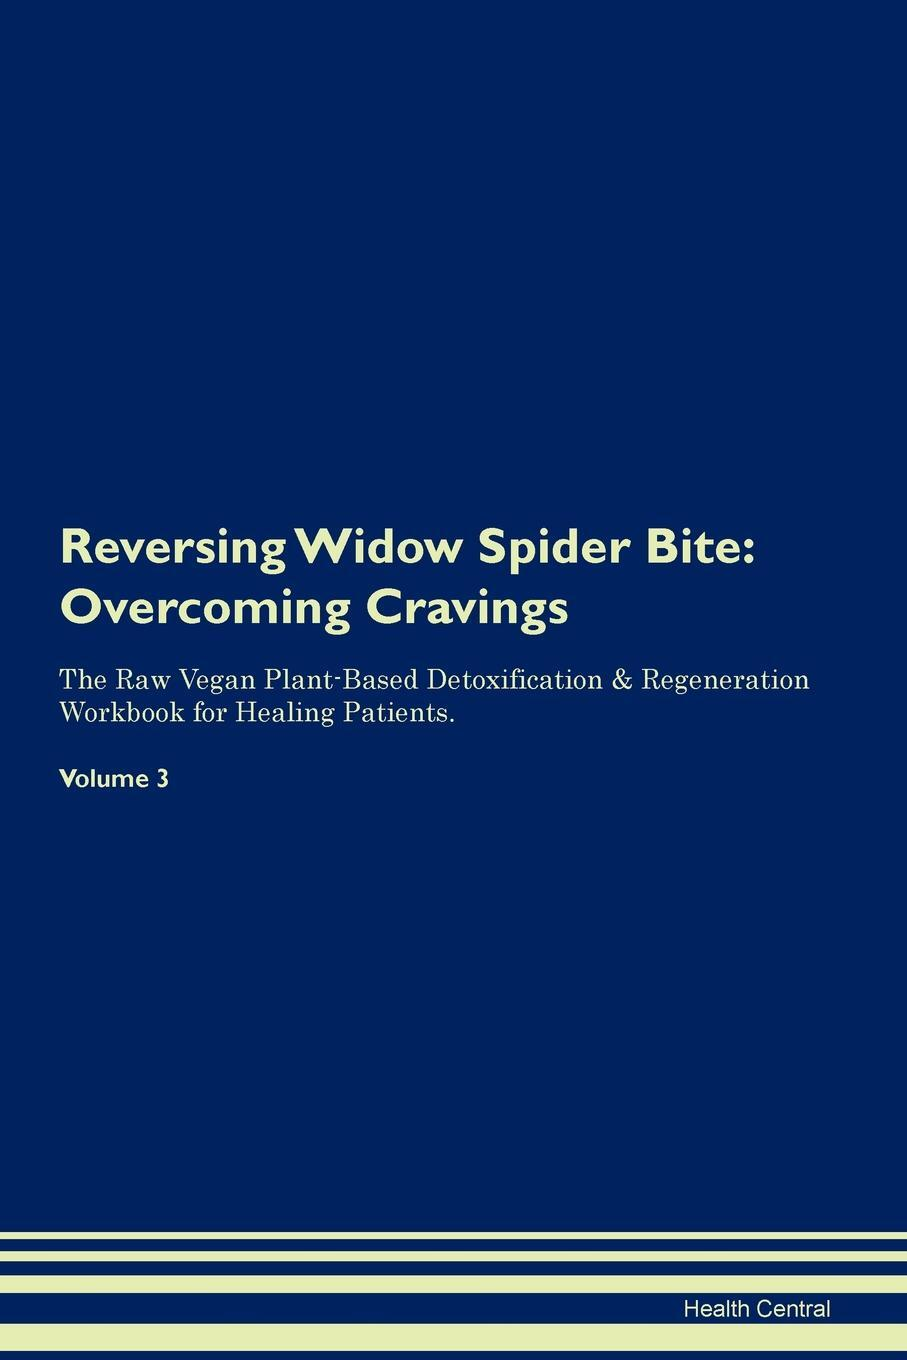 Reversing Widow Spider Bite. Overcoming Cravings The Raw Vegan Plant-Based Detoxification & Regeneration Workbook for Healing Patients. Volume 3